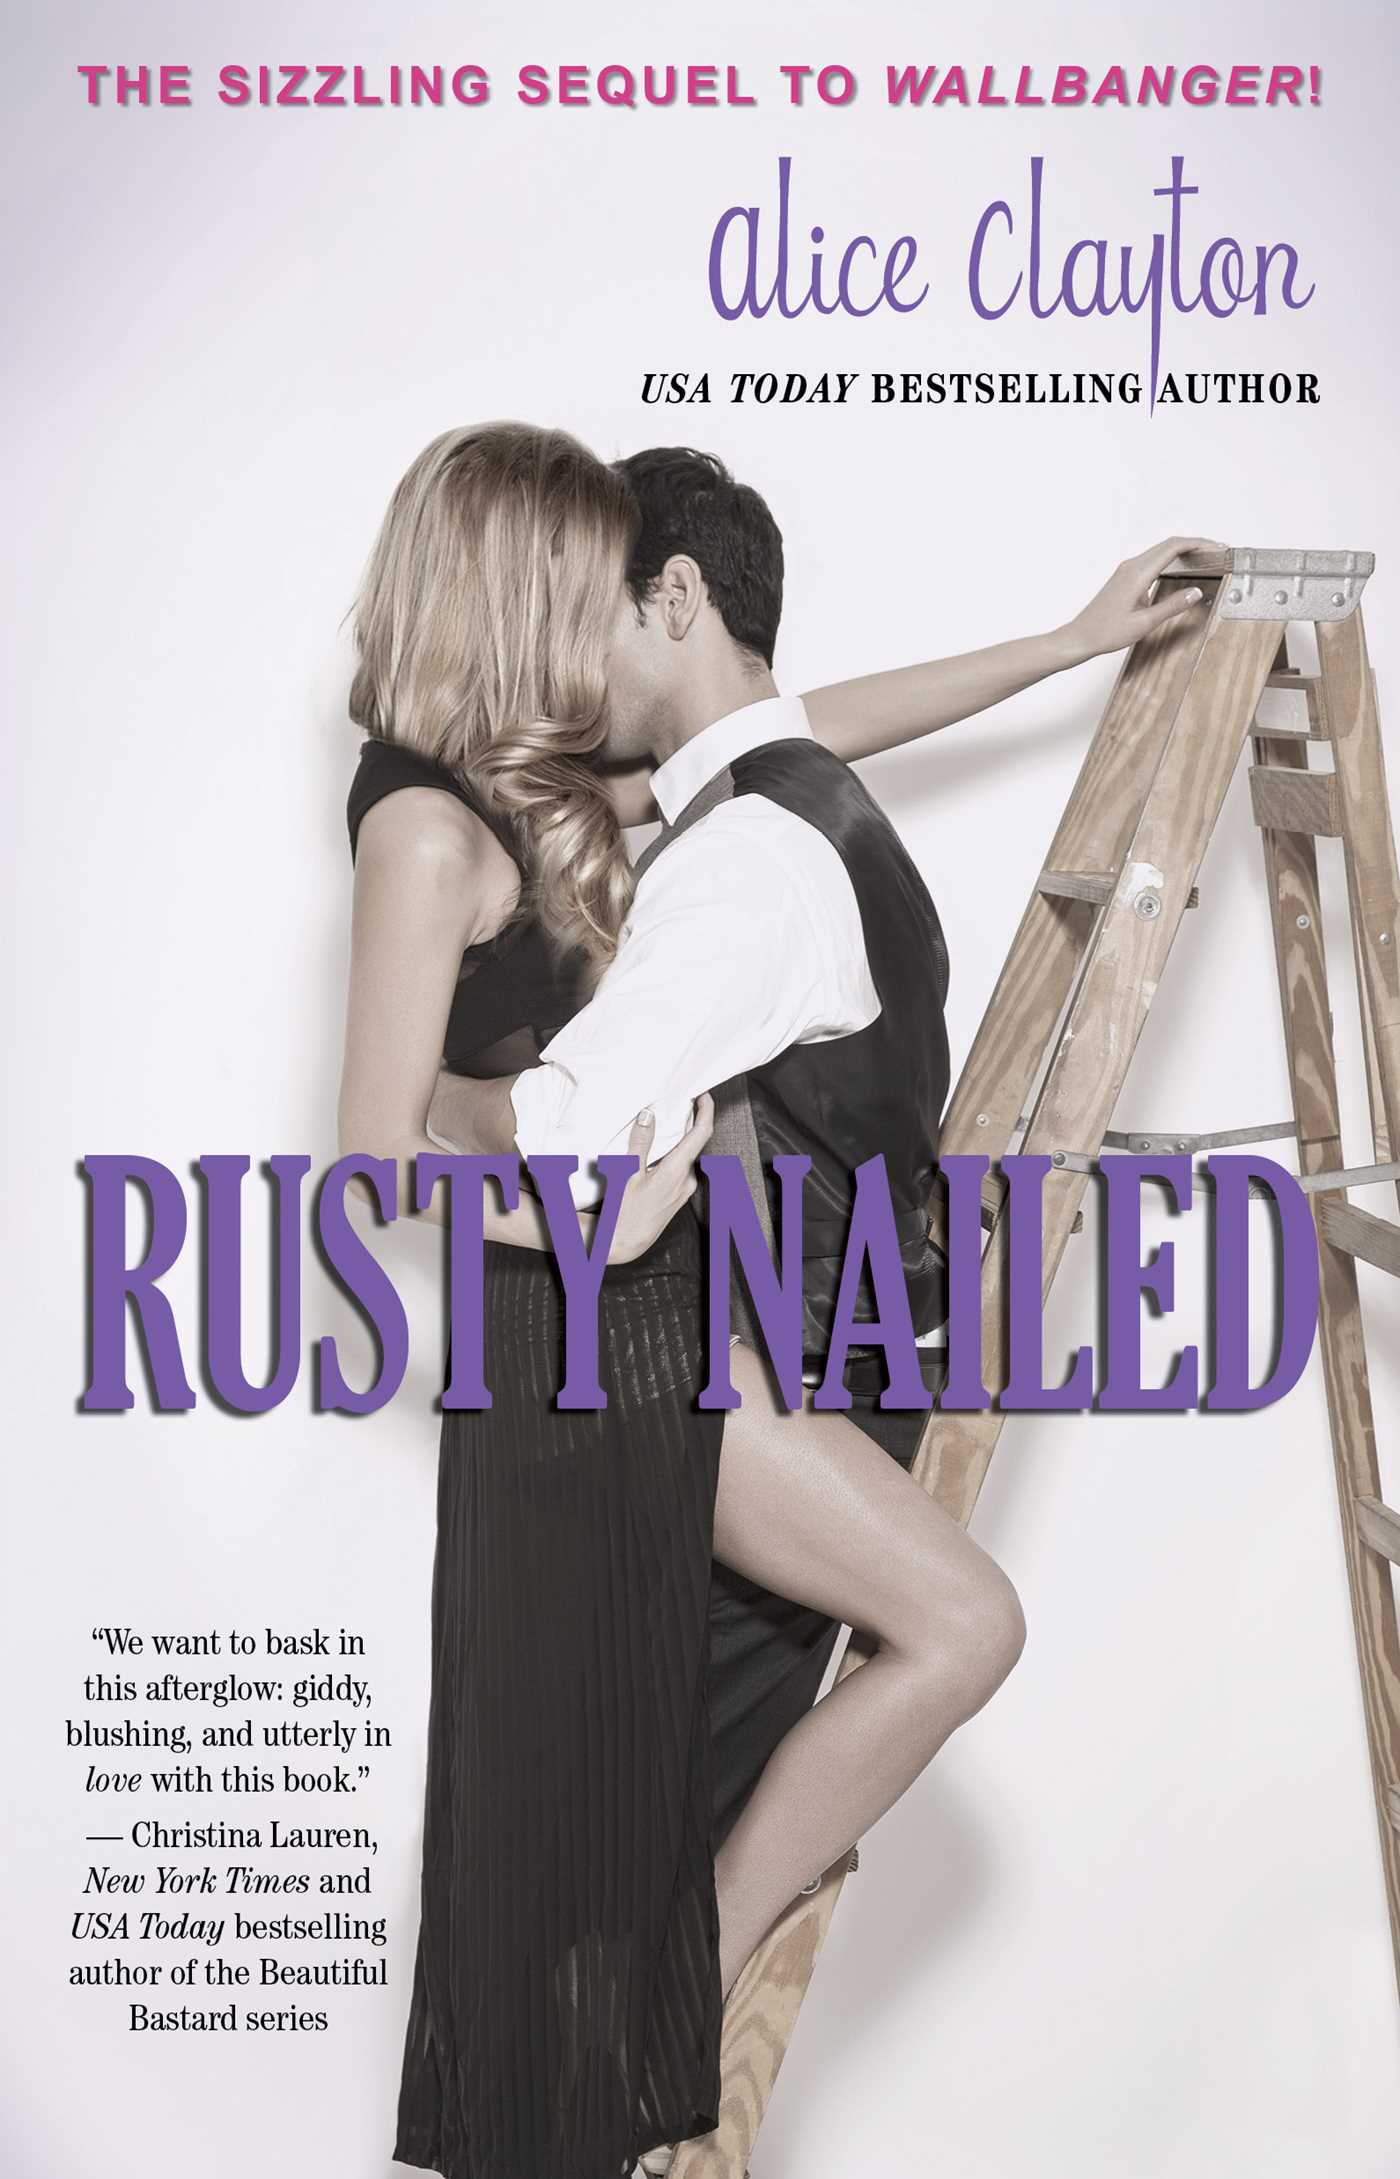 Rusty-nailed-9781476766737_hr